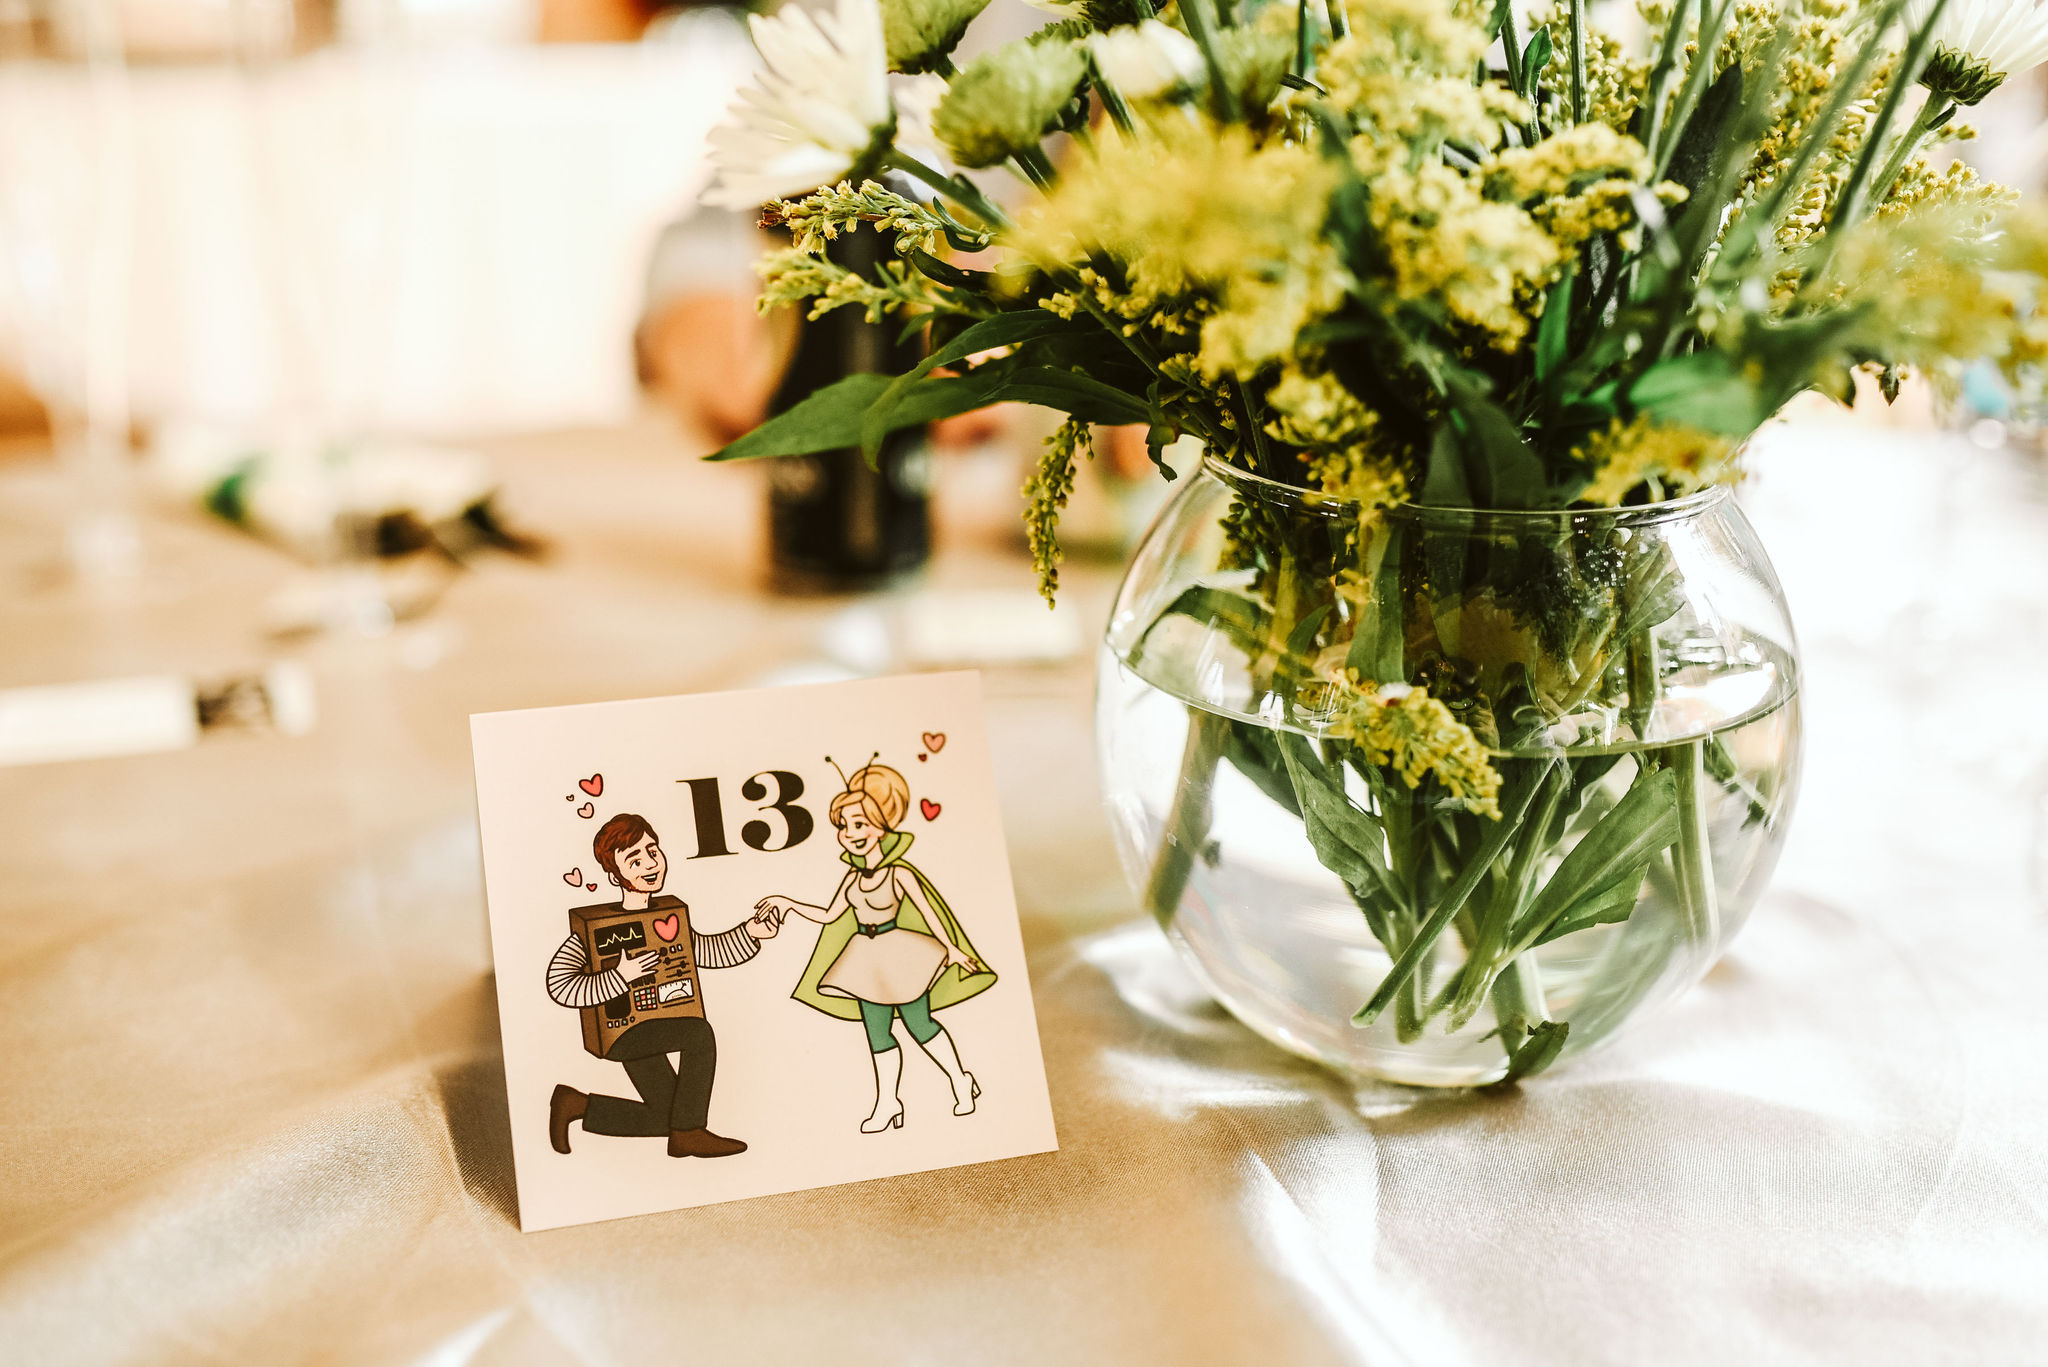 Baltimore, Lithuanian Dance Hall, Maryland Wedding Photographer, Vintage, Classic, 50s Style, Wedding Reception, Table Numbers, Hand Drawn Details, Sci-fi, Baltimore City